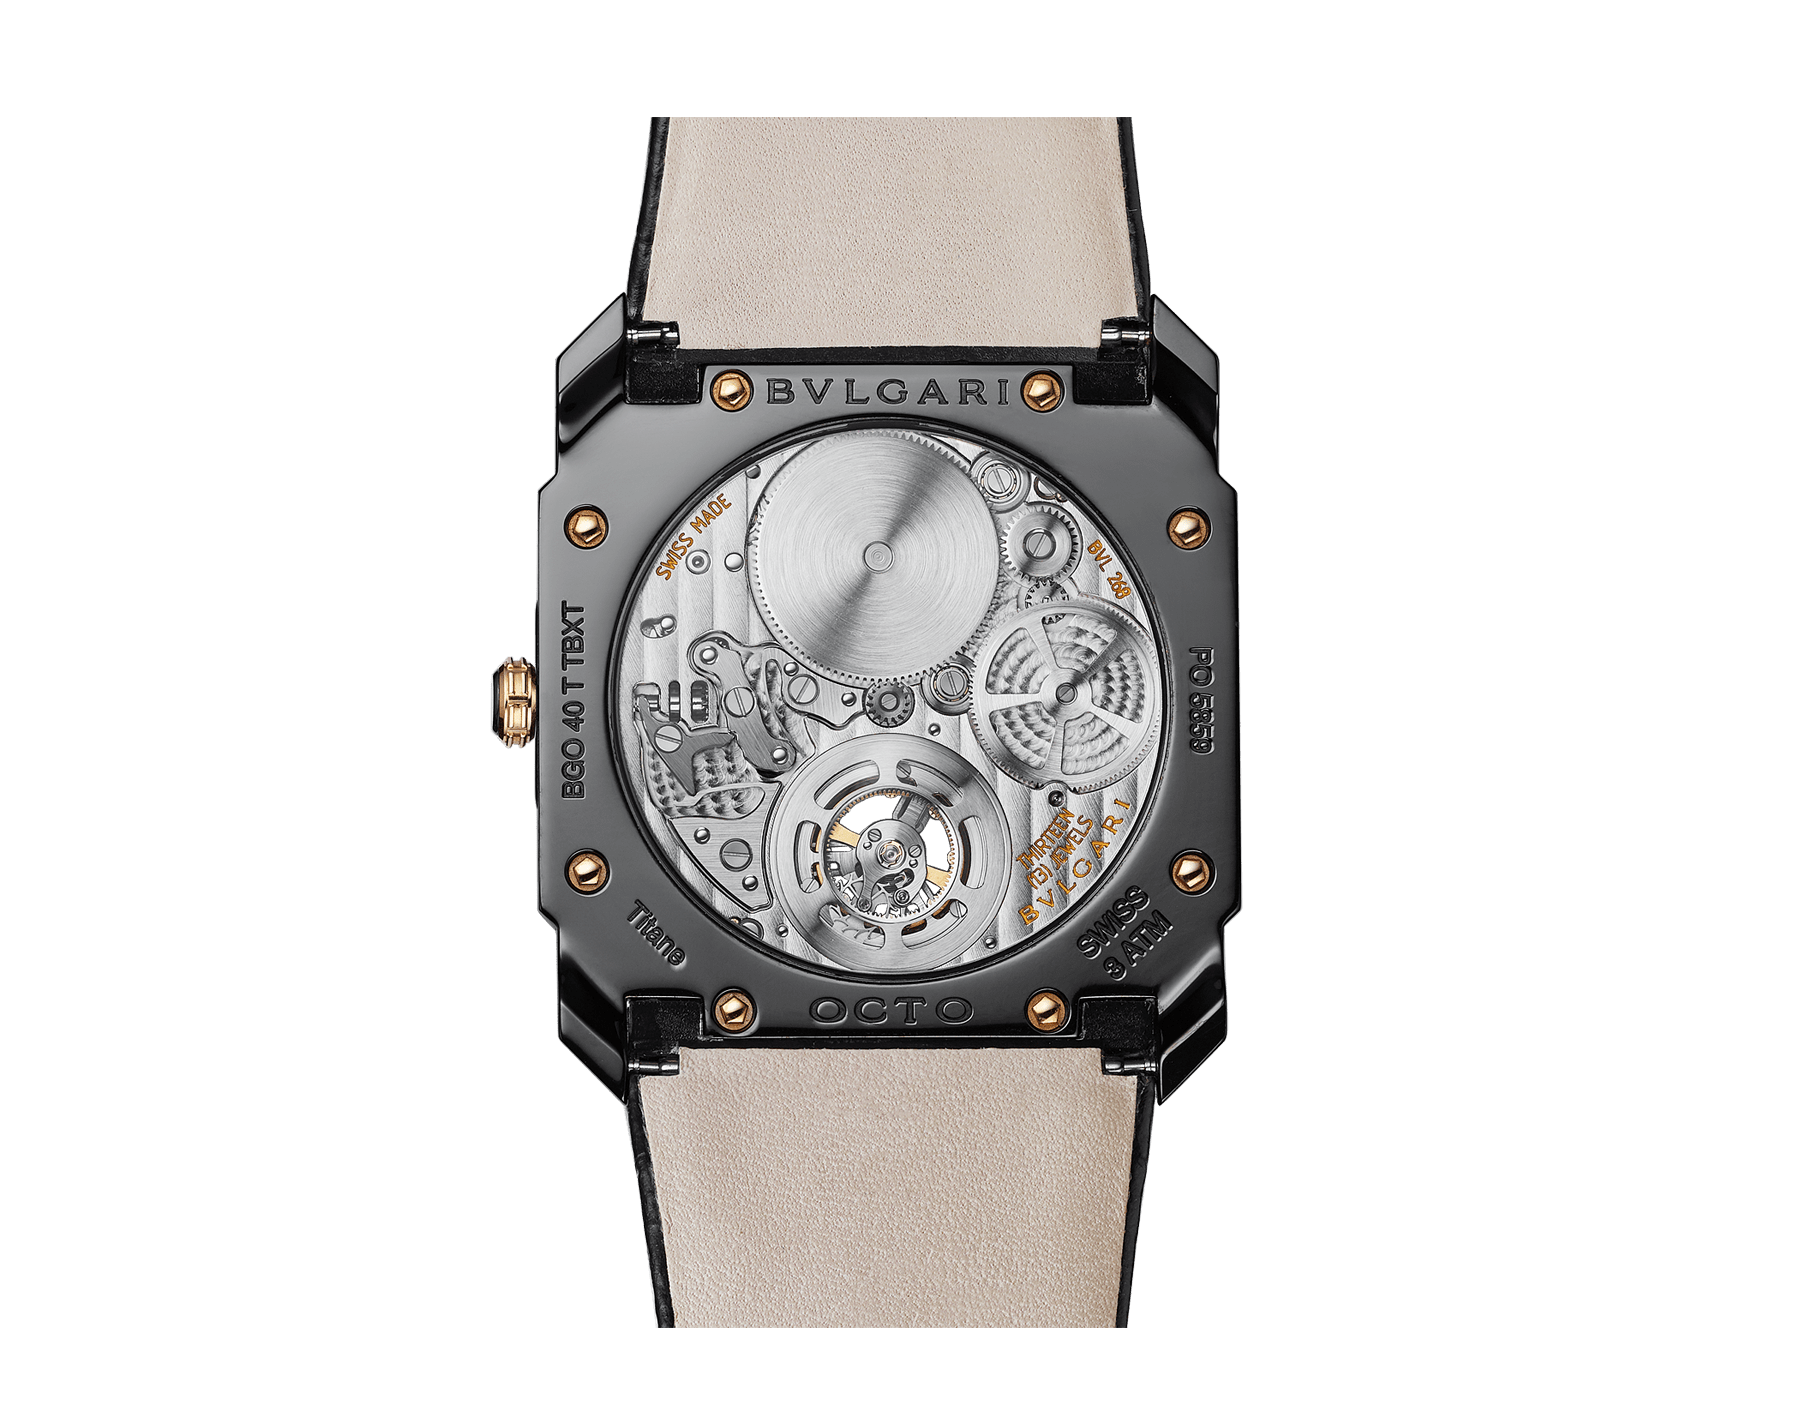 Orologio Octo Finissimo Tourbillon con movimento meccanico di manifattura ultrapiatto a carica manuale con cuscinetti a sfera, cassa in titanio con trattamento DLC (Diamond-Like Carbon), quadrante laccato nero con tourbillon a vista e cinturino in alligatore nero. 102560 image 5